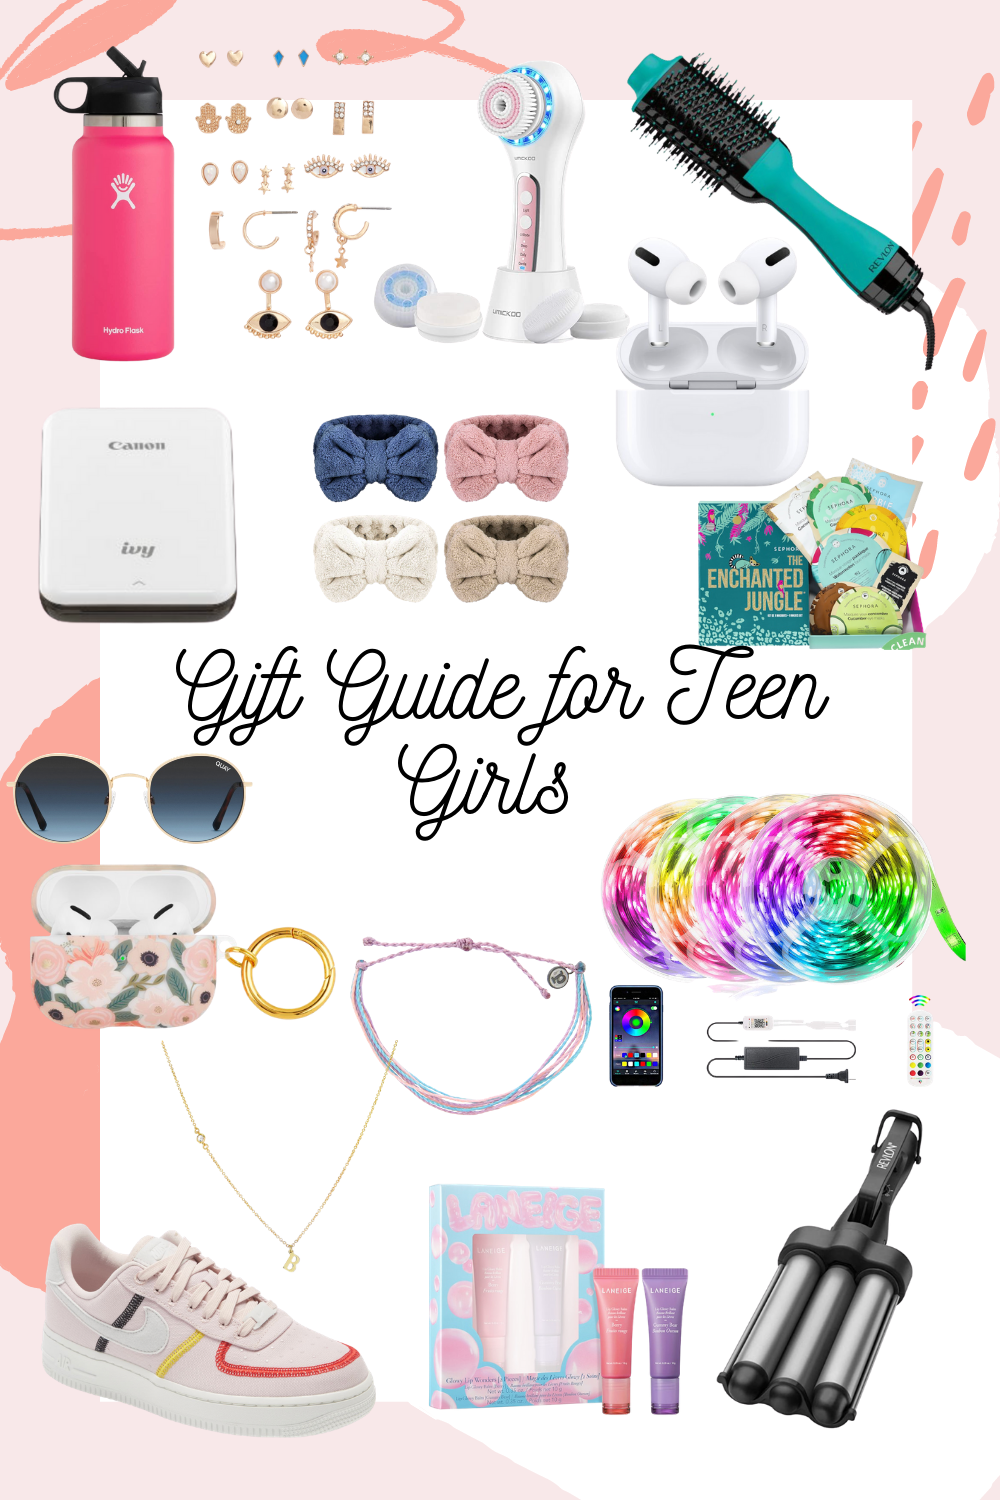 gift guide for teen girls. teenager gifts. Christmas gifts. gift guide. teen gifts. holiday gift guide. polaroid .  led lights.  gifts for girls.